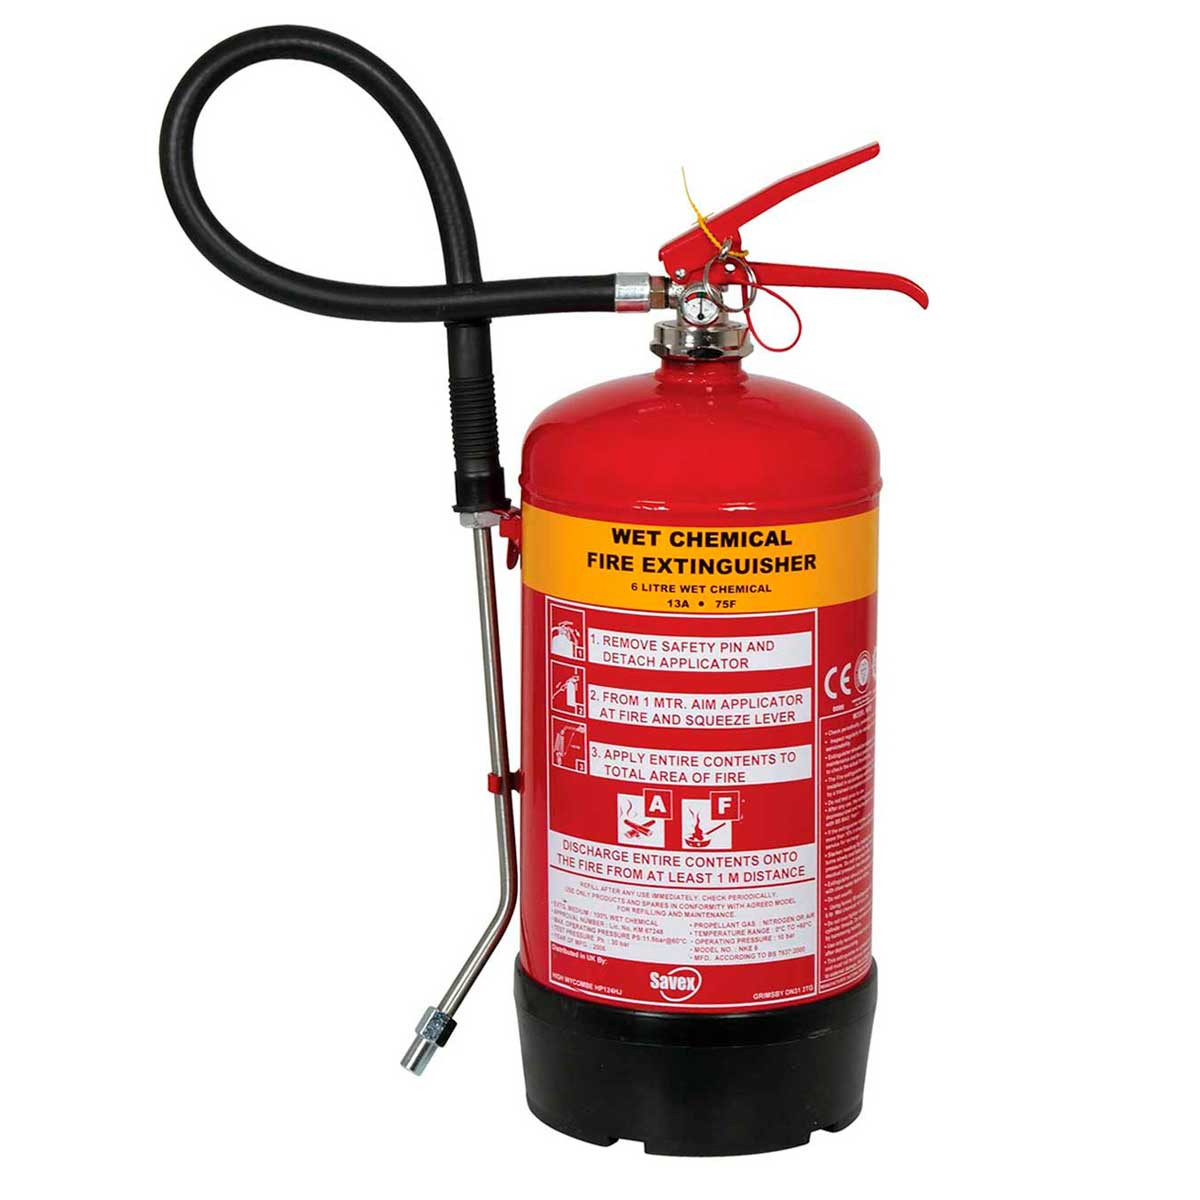 6 litres Wet Chemical Fire Extinguisher